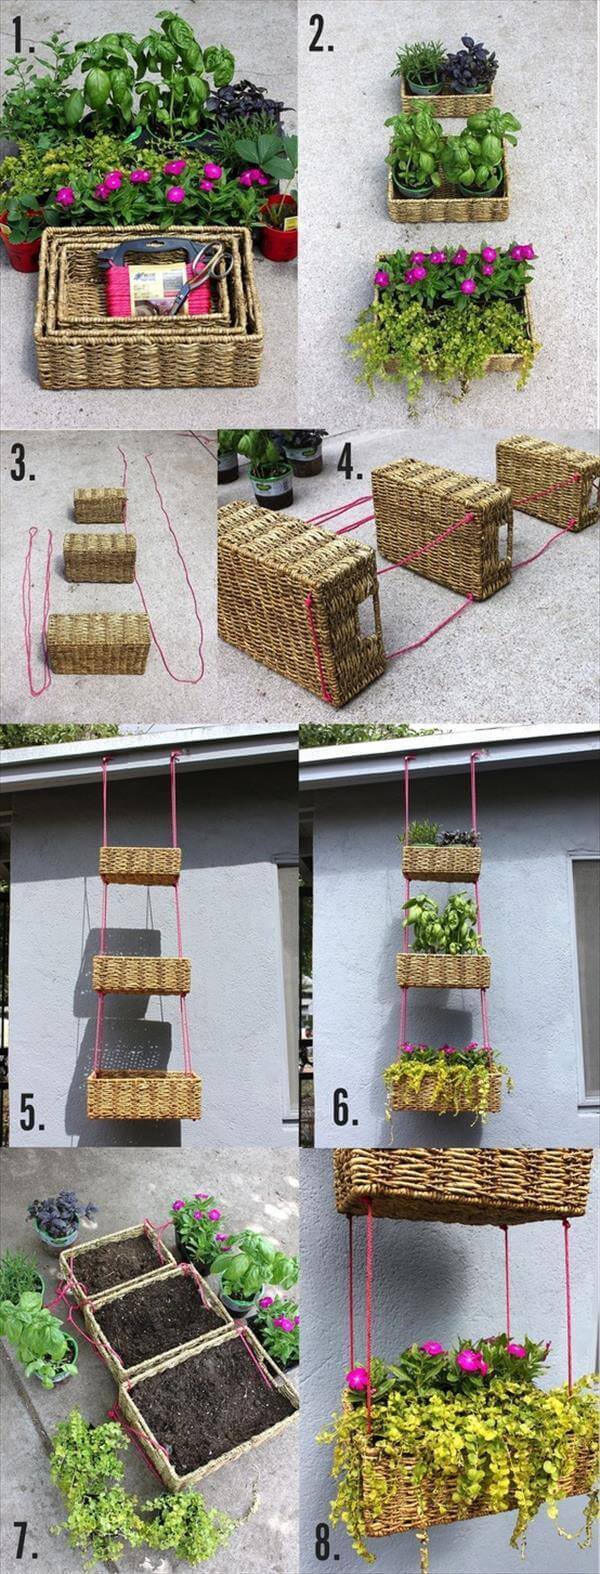 diy hanging basket garden